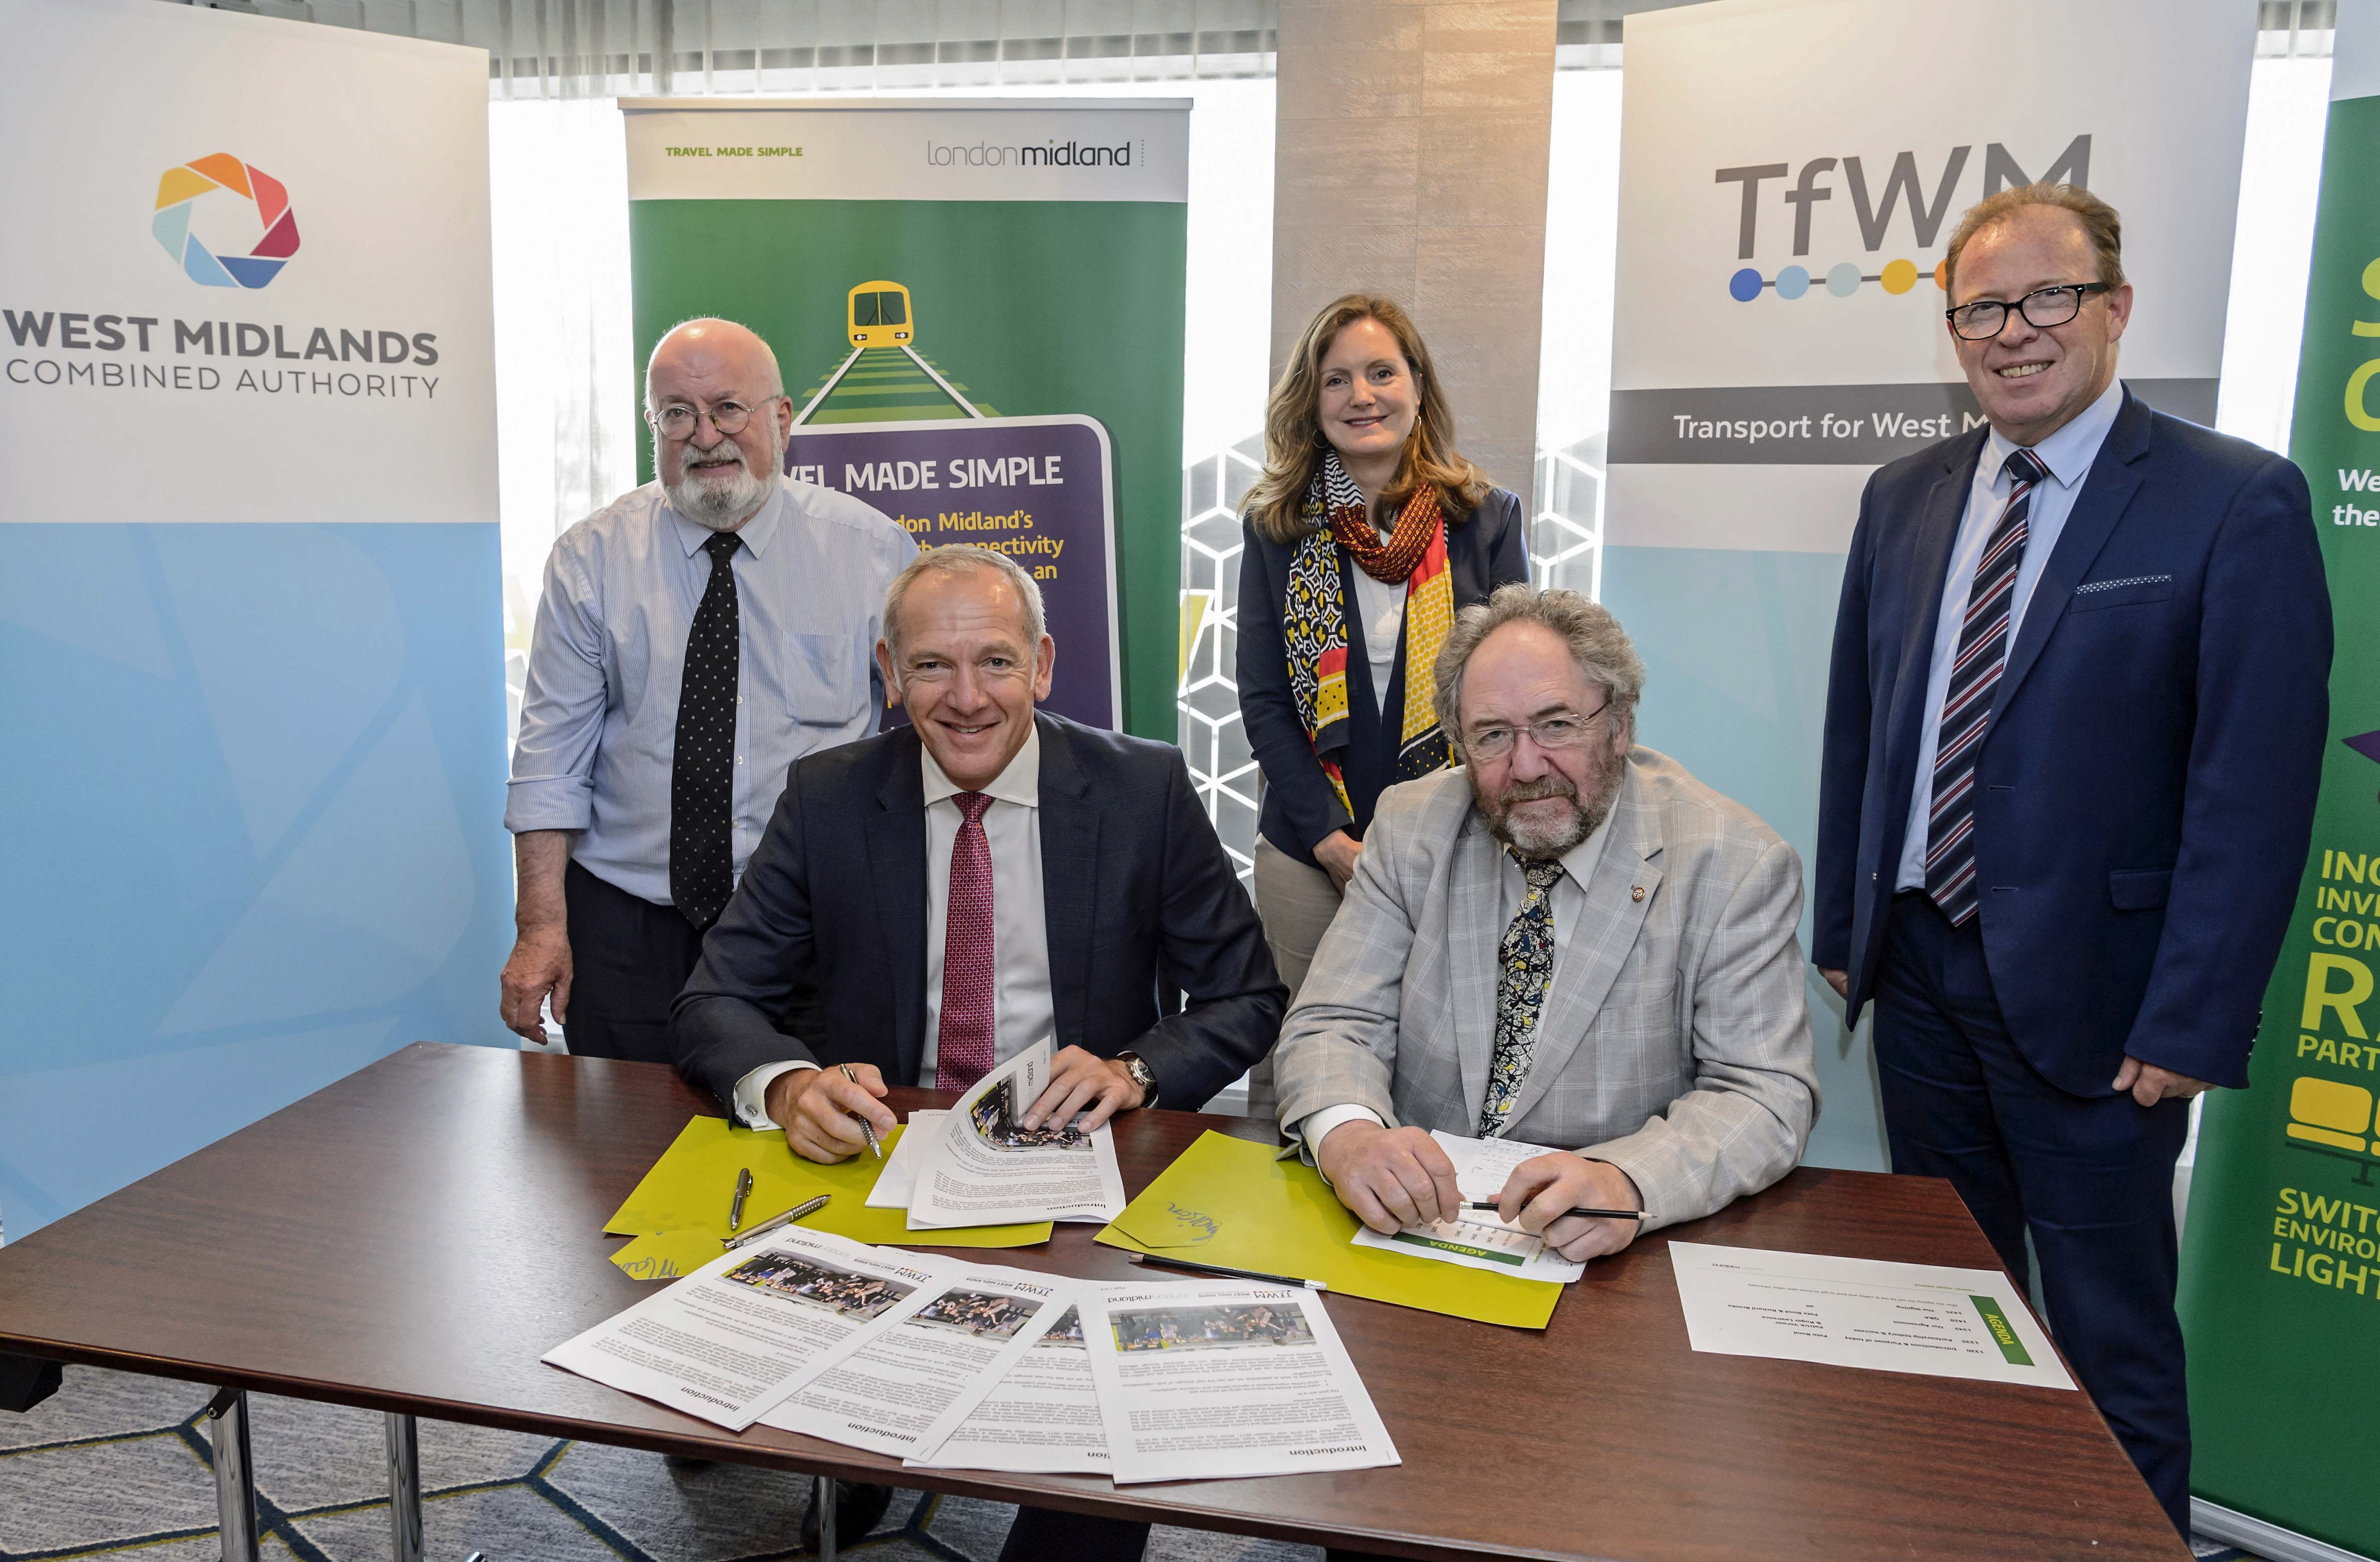 London Midland and Transport for West Midlands sign new partnership deal